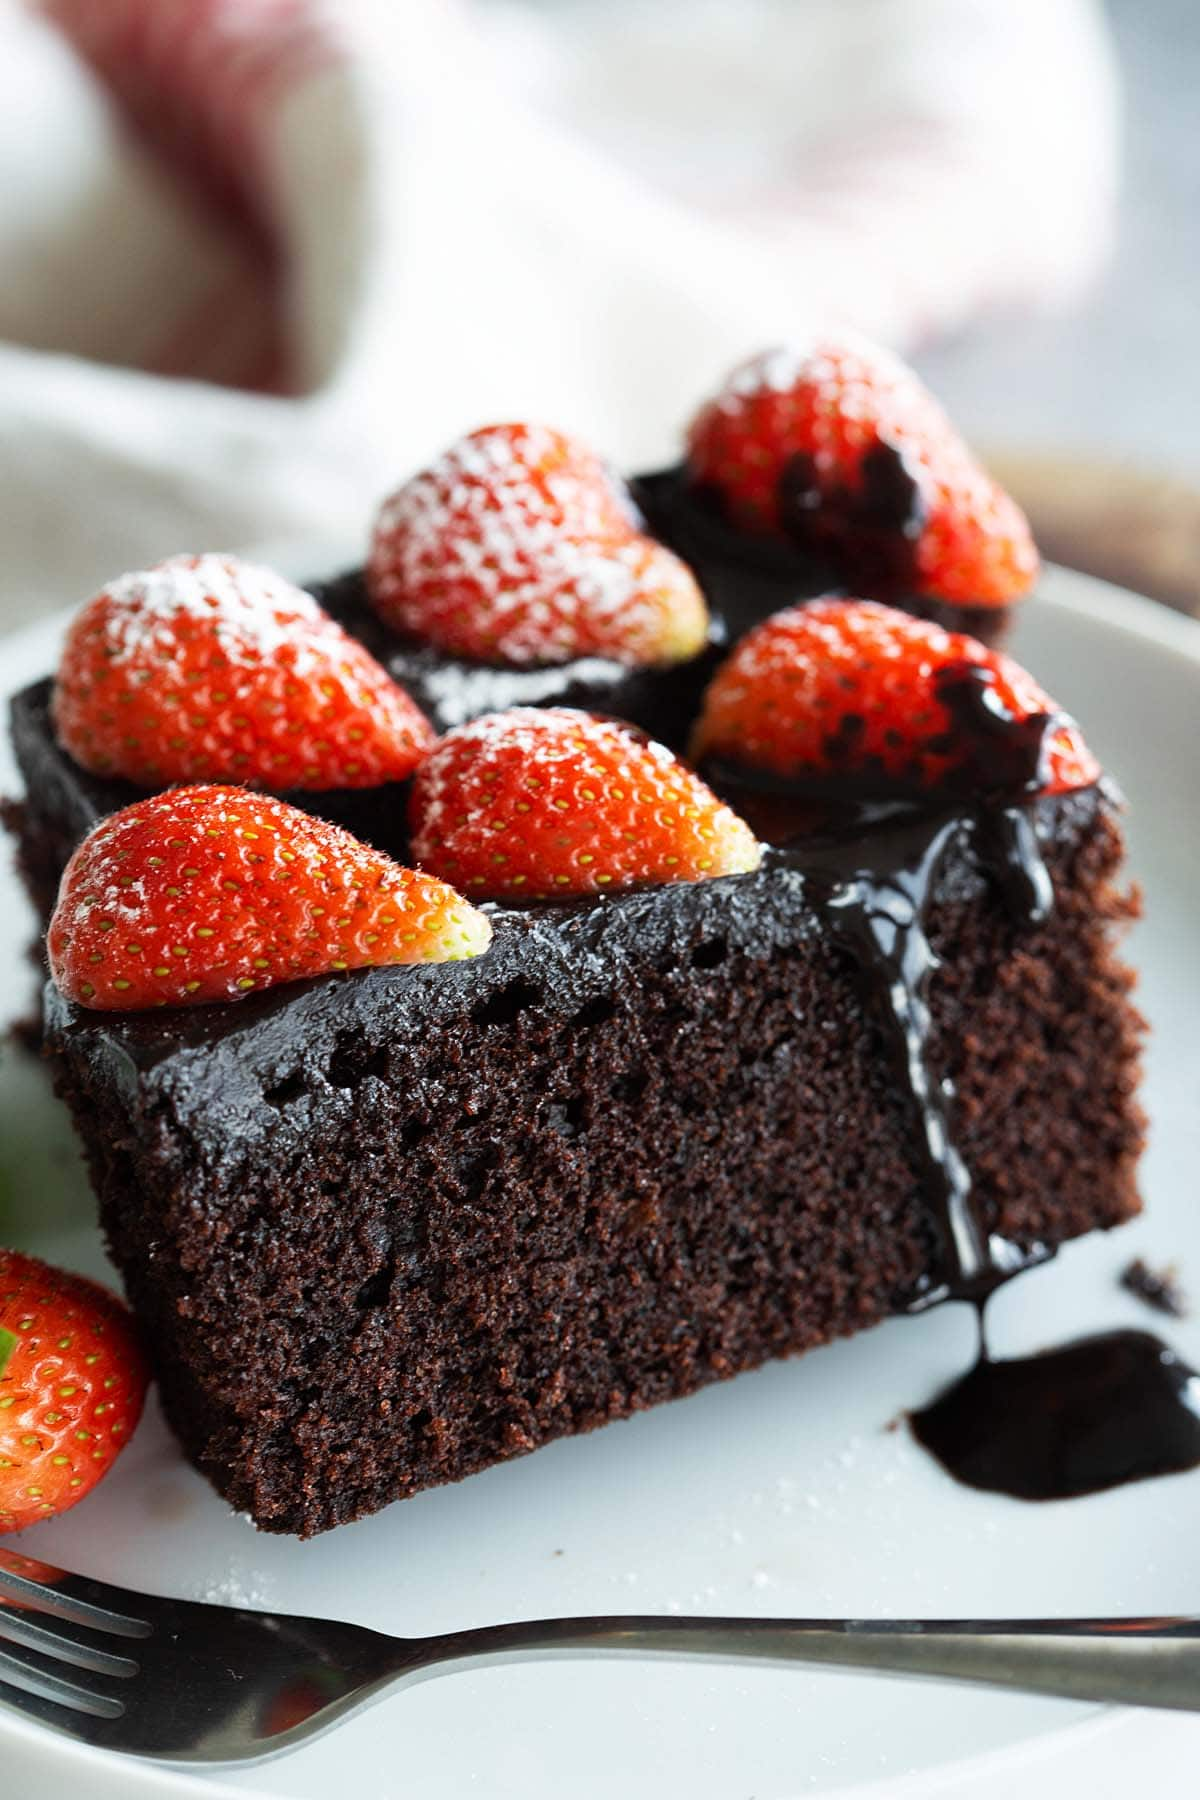 Chocolate cake recipe that is homemade, simple, moist and the best.